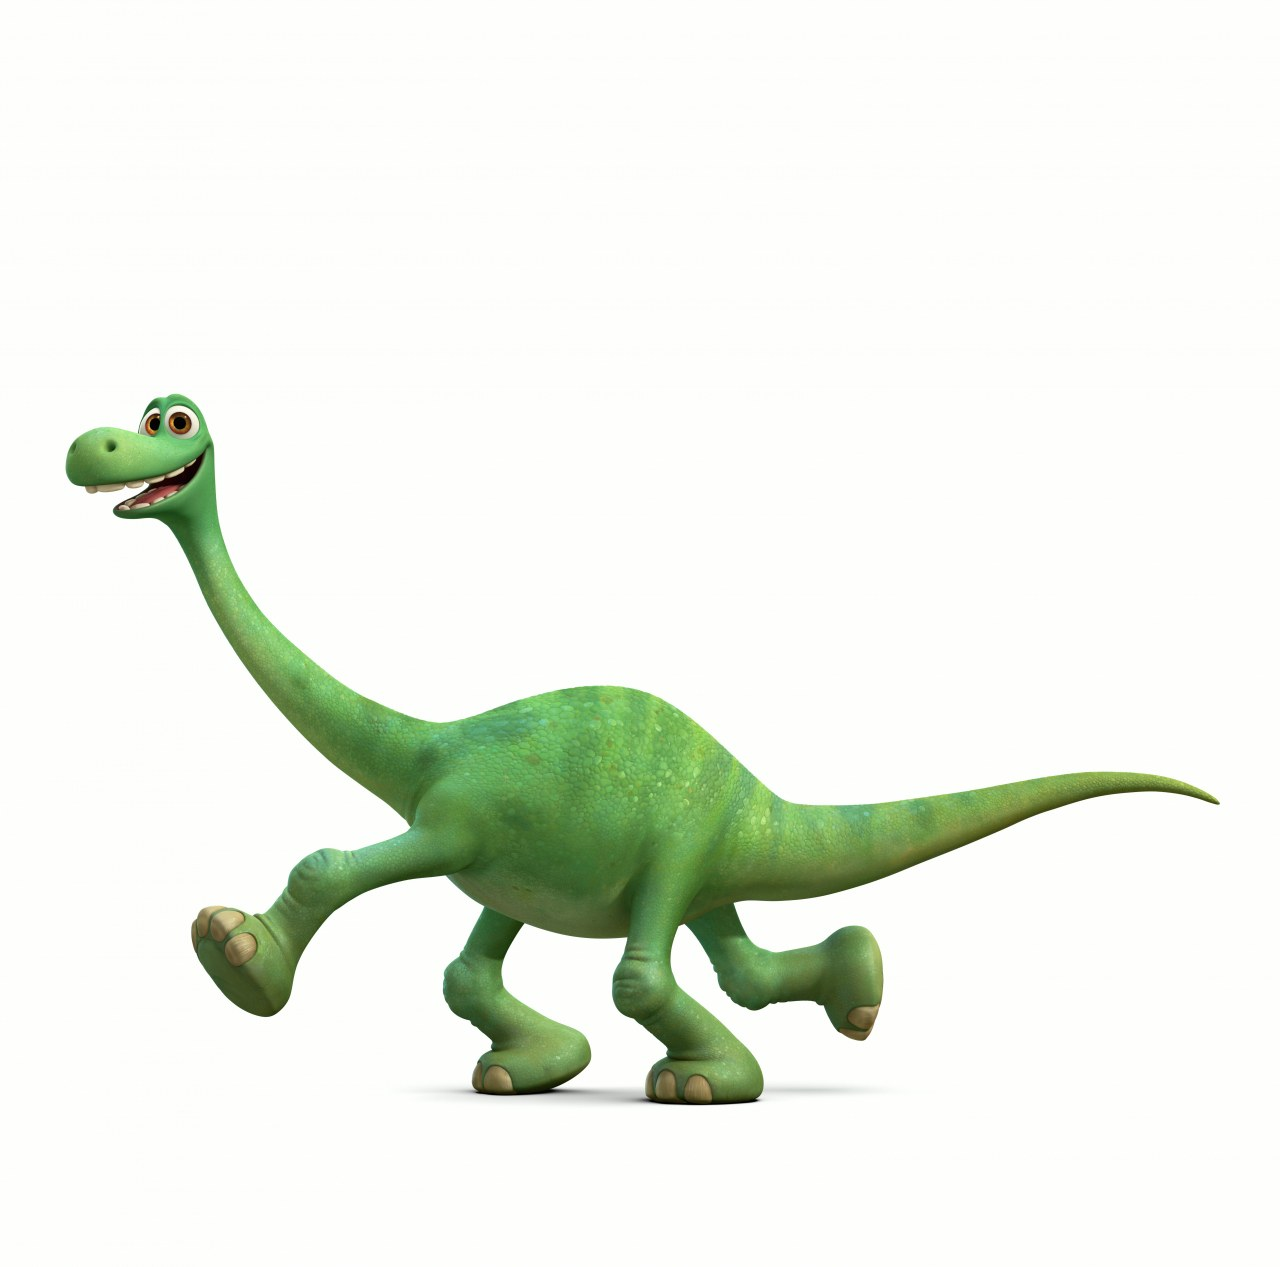 The Good Dinosaur - Bild 11